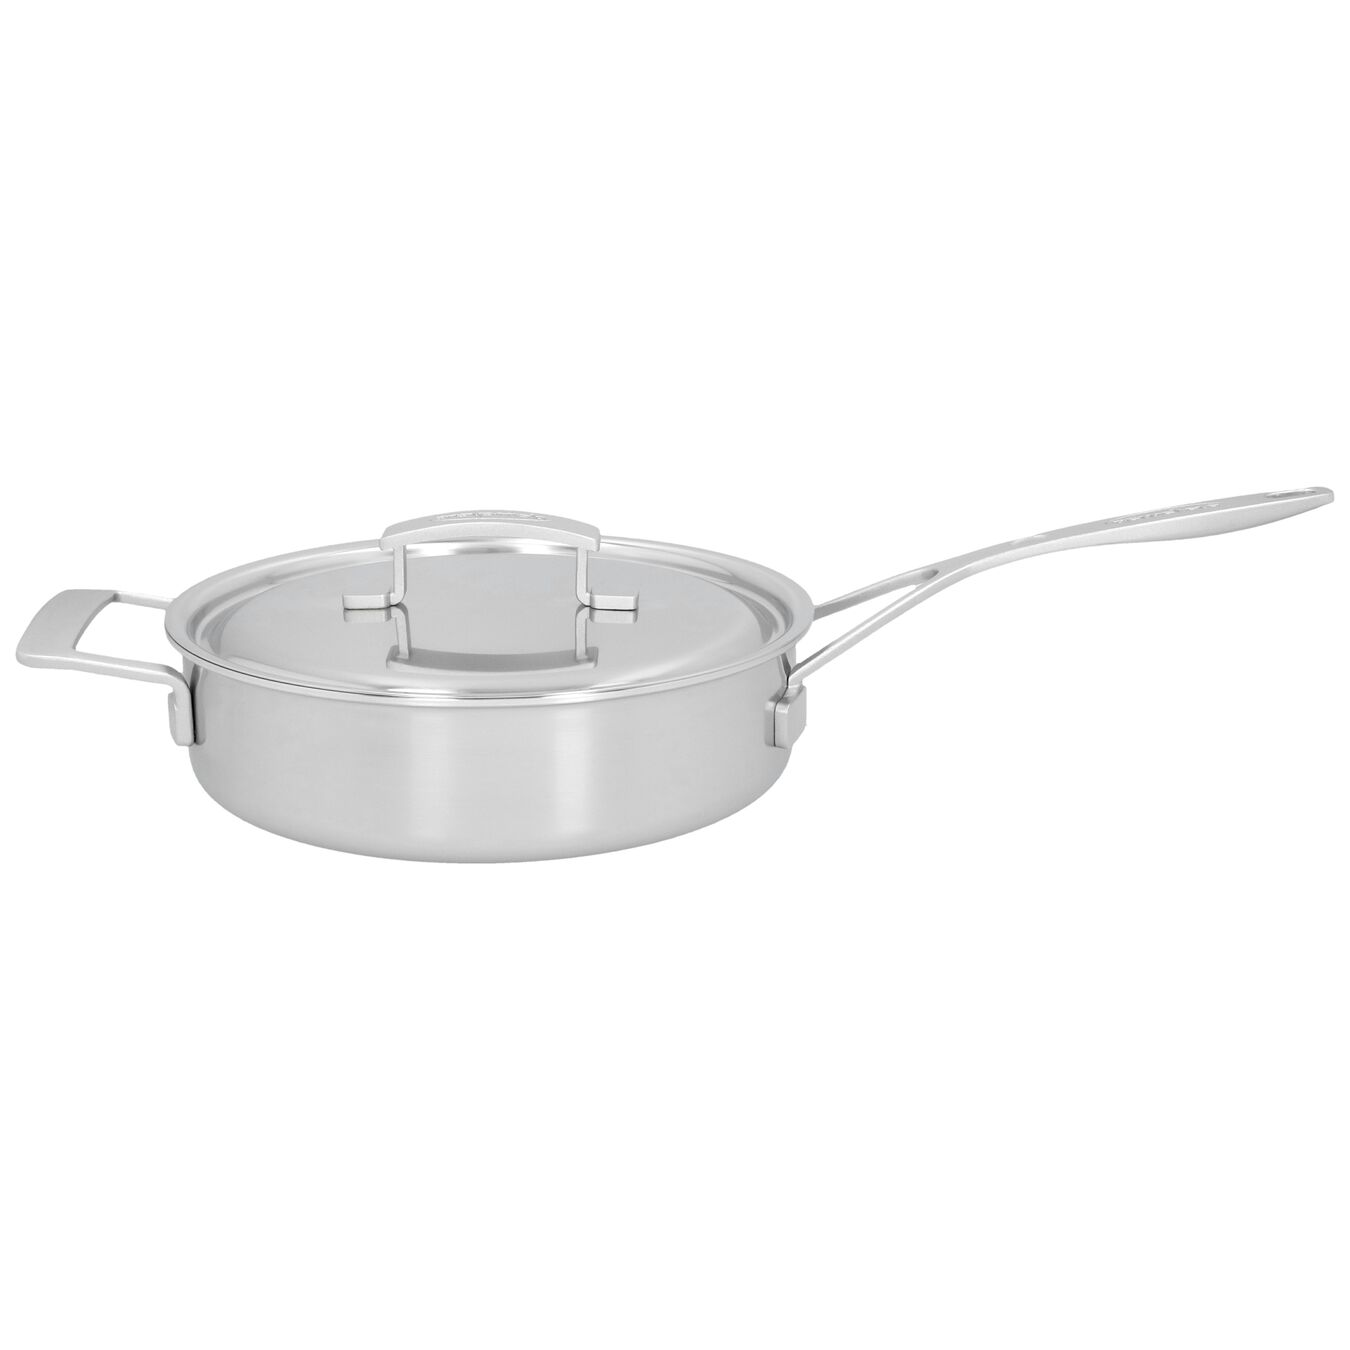 9.5-inch Saute pan with lid, 18/10 Stainless Steel ,,large 1